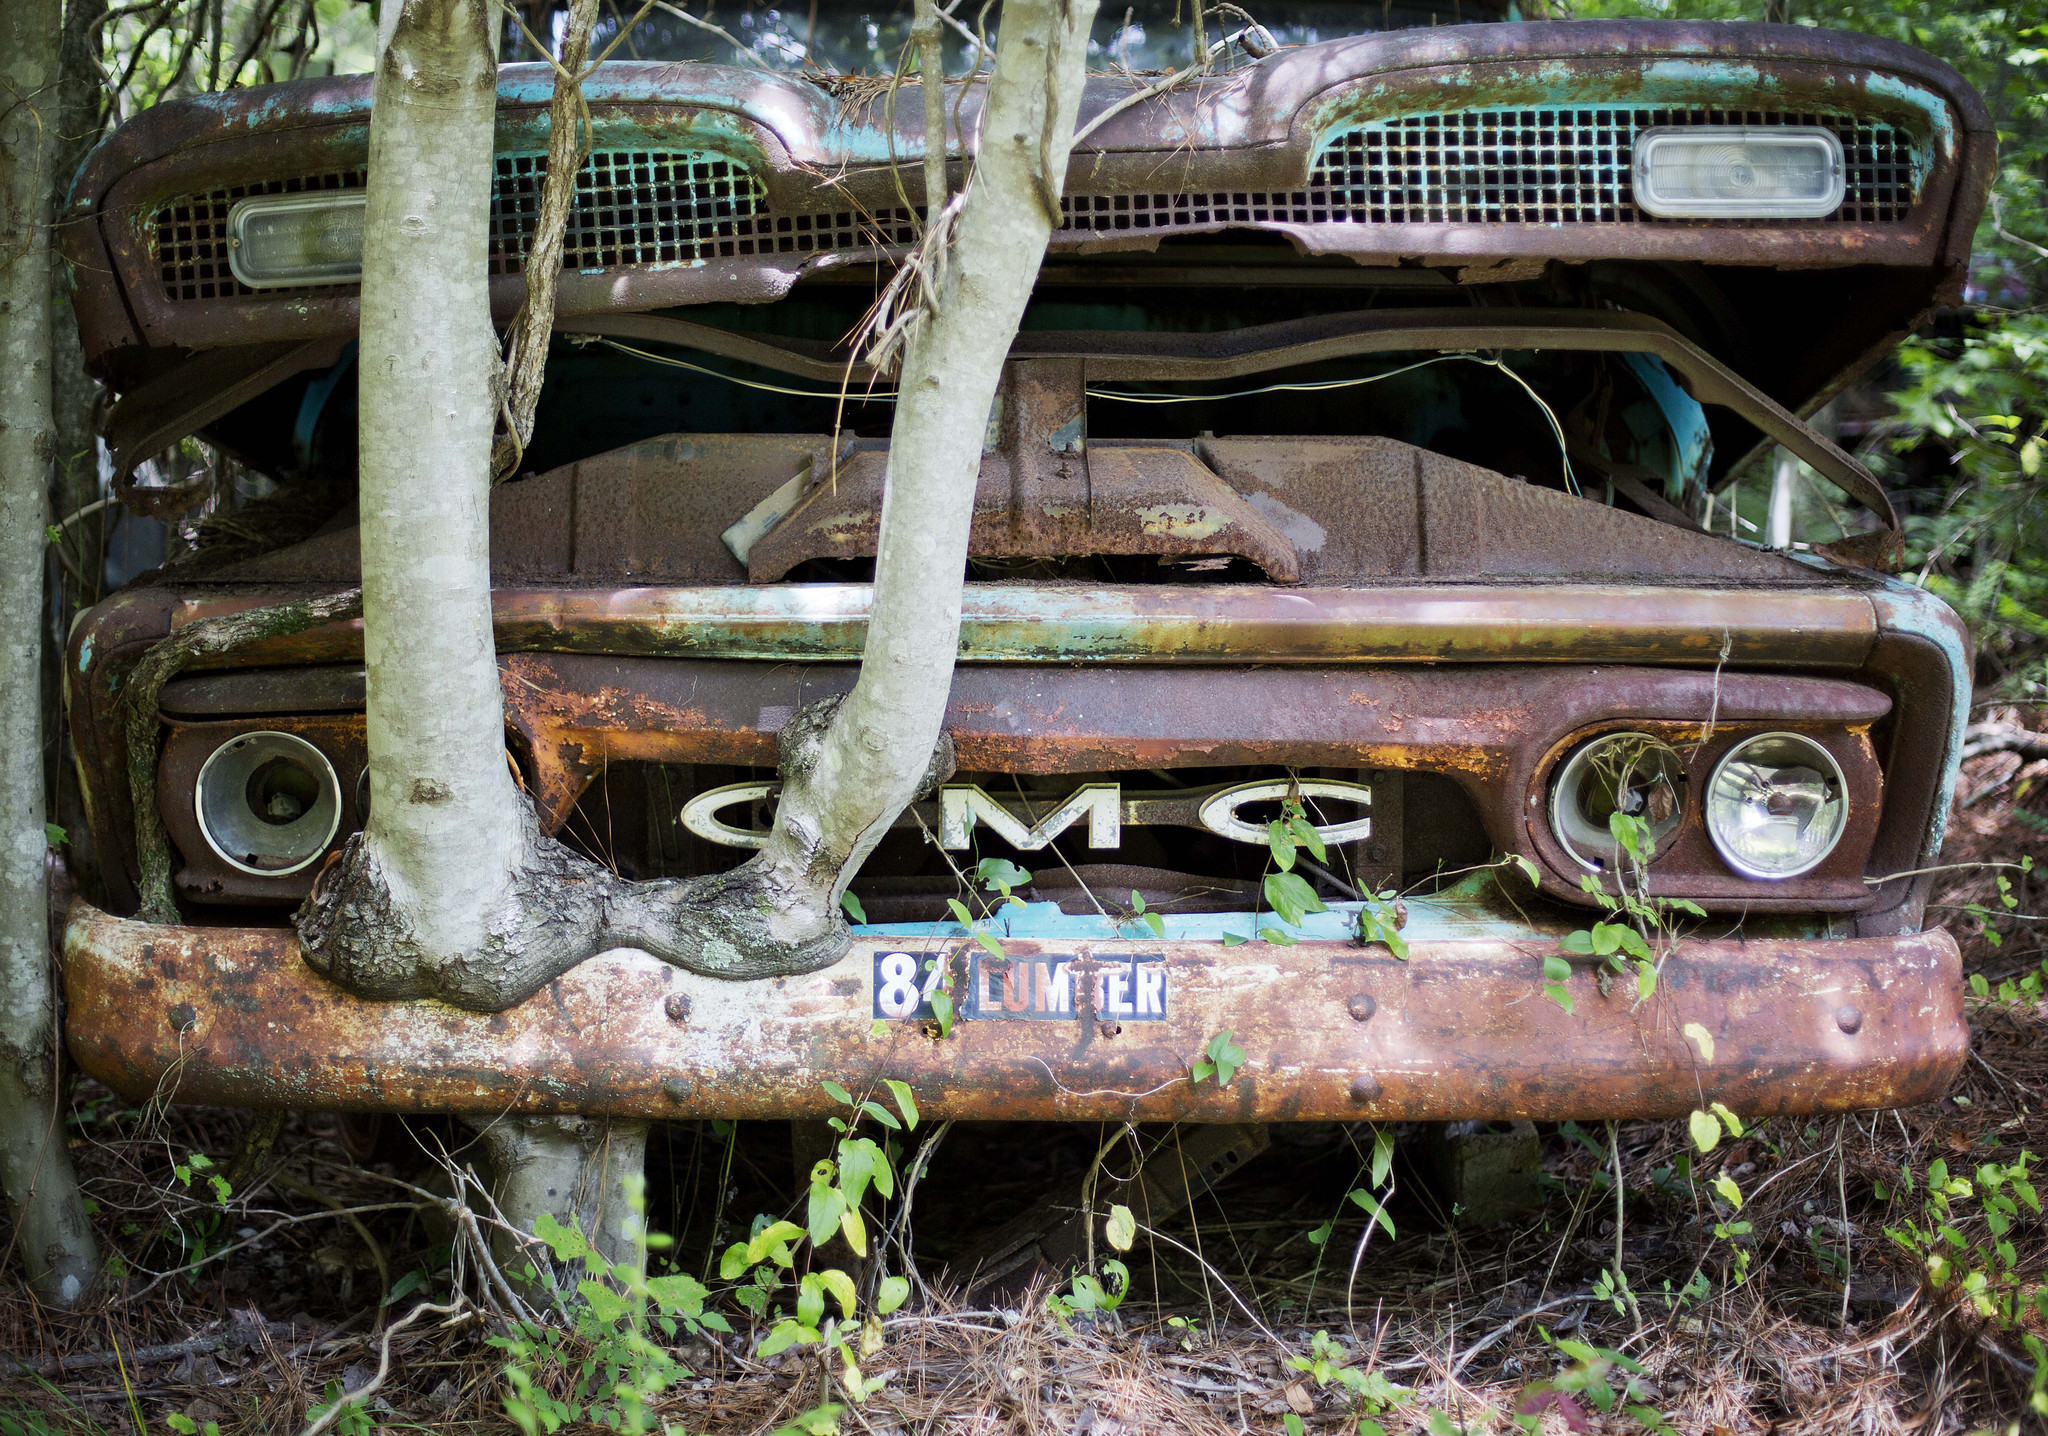 World's largest classic car junkyard takes root in U.S. forest